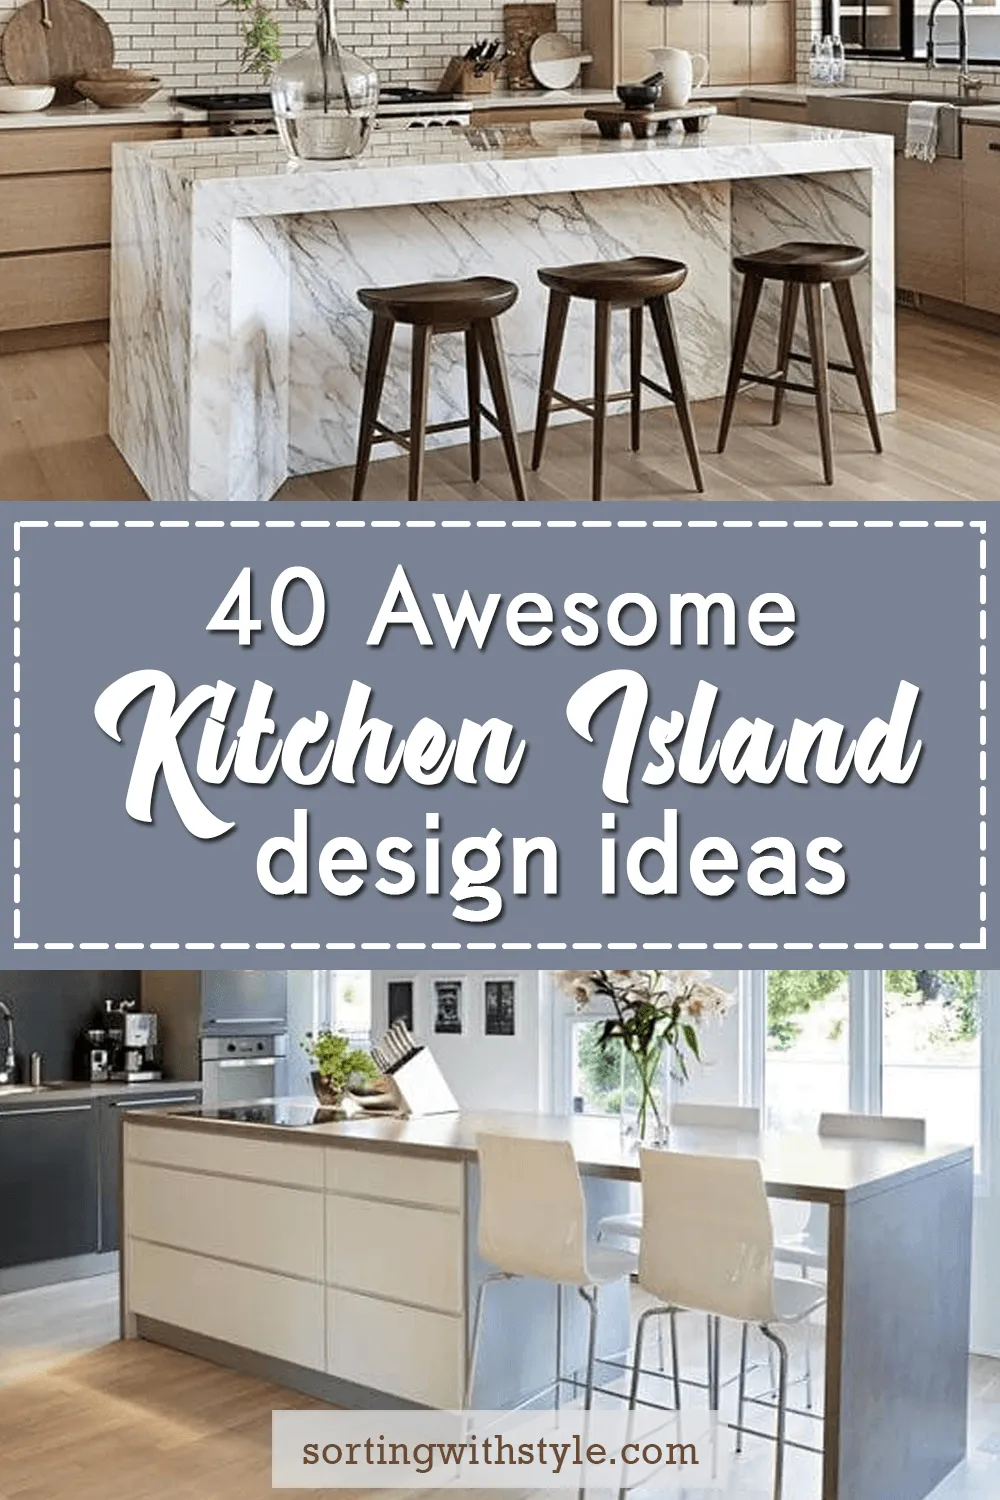 40 Awesome Kitchen Island Design Ideas With Modern Decor Layout Kitchen Island Ideas Modern Kitch Kitchen Island Design Kitchen Design Diy Kitchen Layout